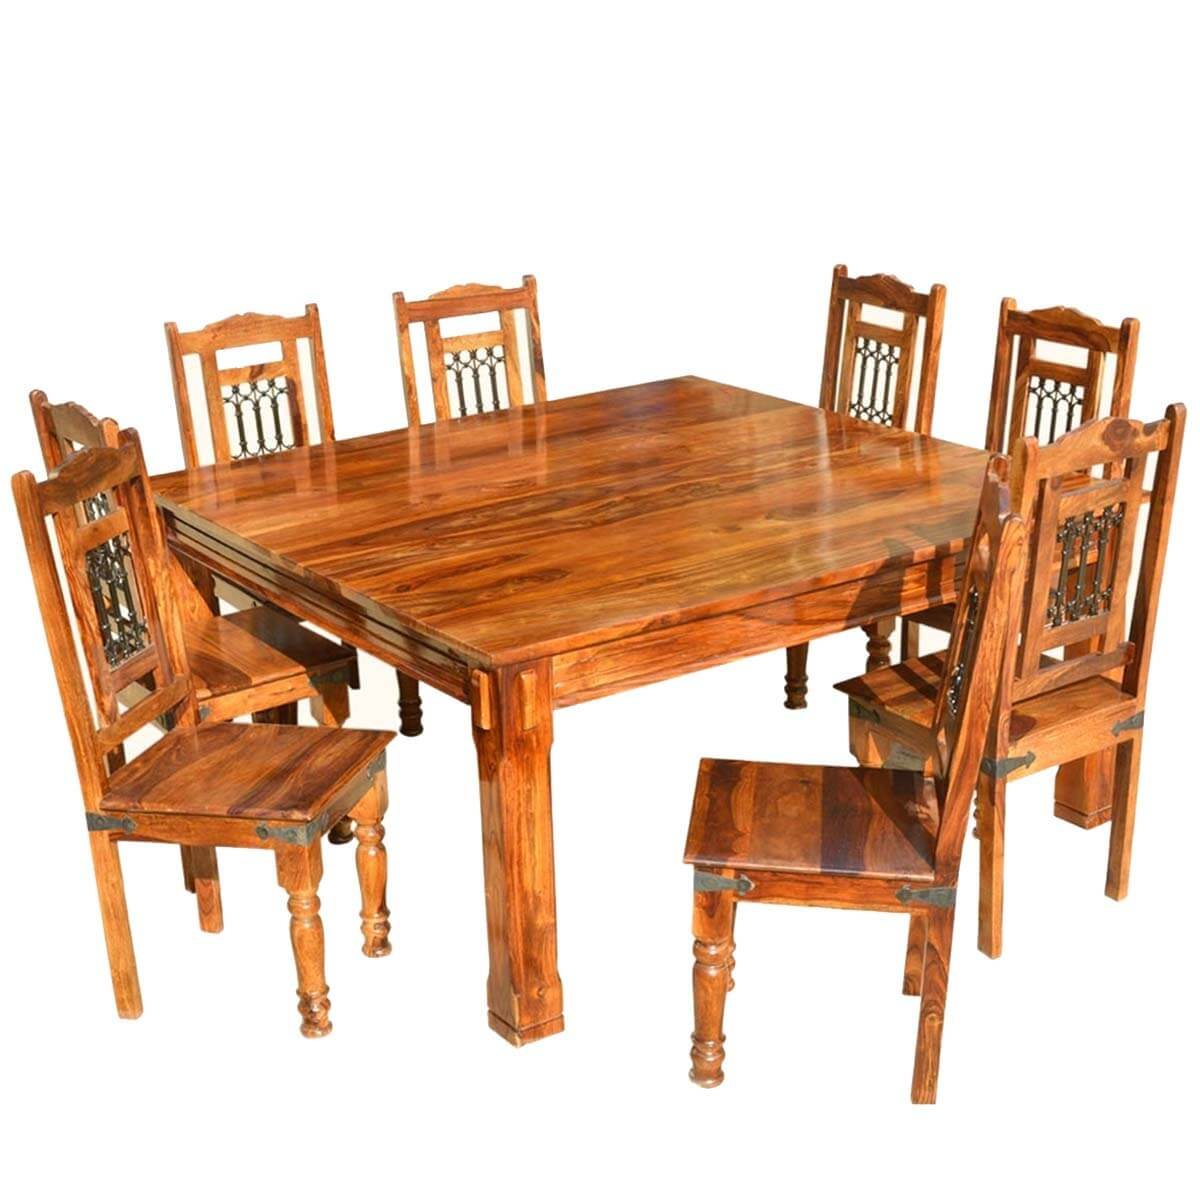 Transitional solid wood rustic square dining table chairs set for Rustic dining table set